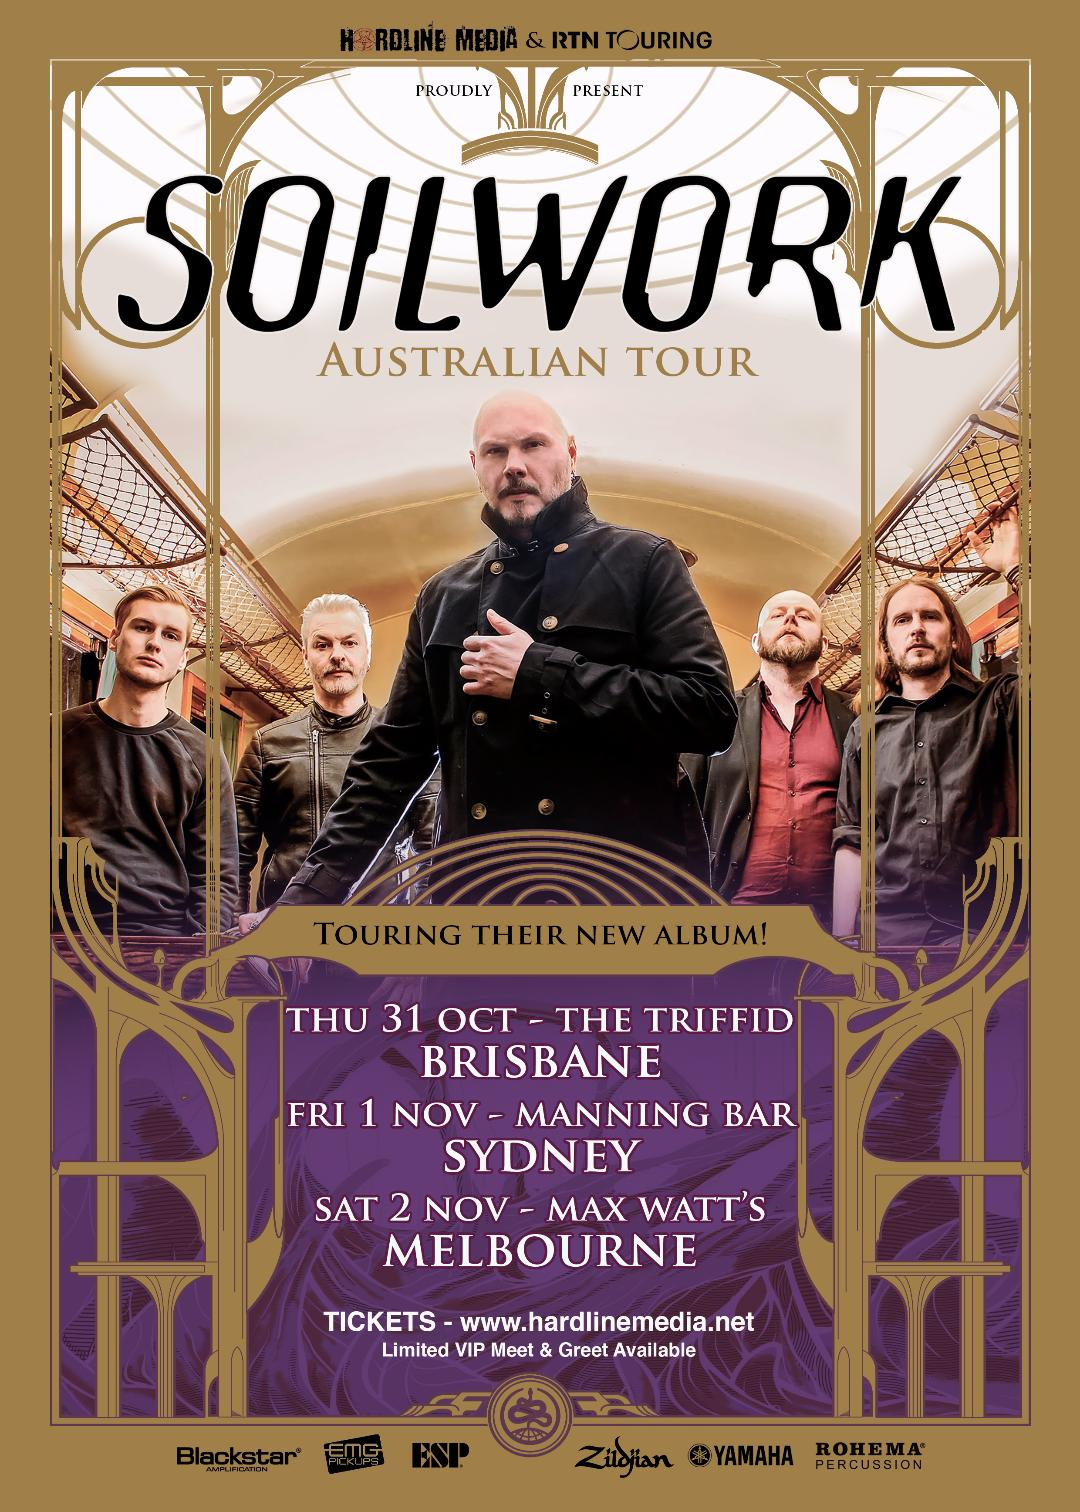 Image of SOILWORK TICKET (VIP) - SYDNEY, MANNING BAR - FRI 1 NOV 2019